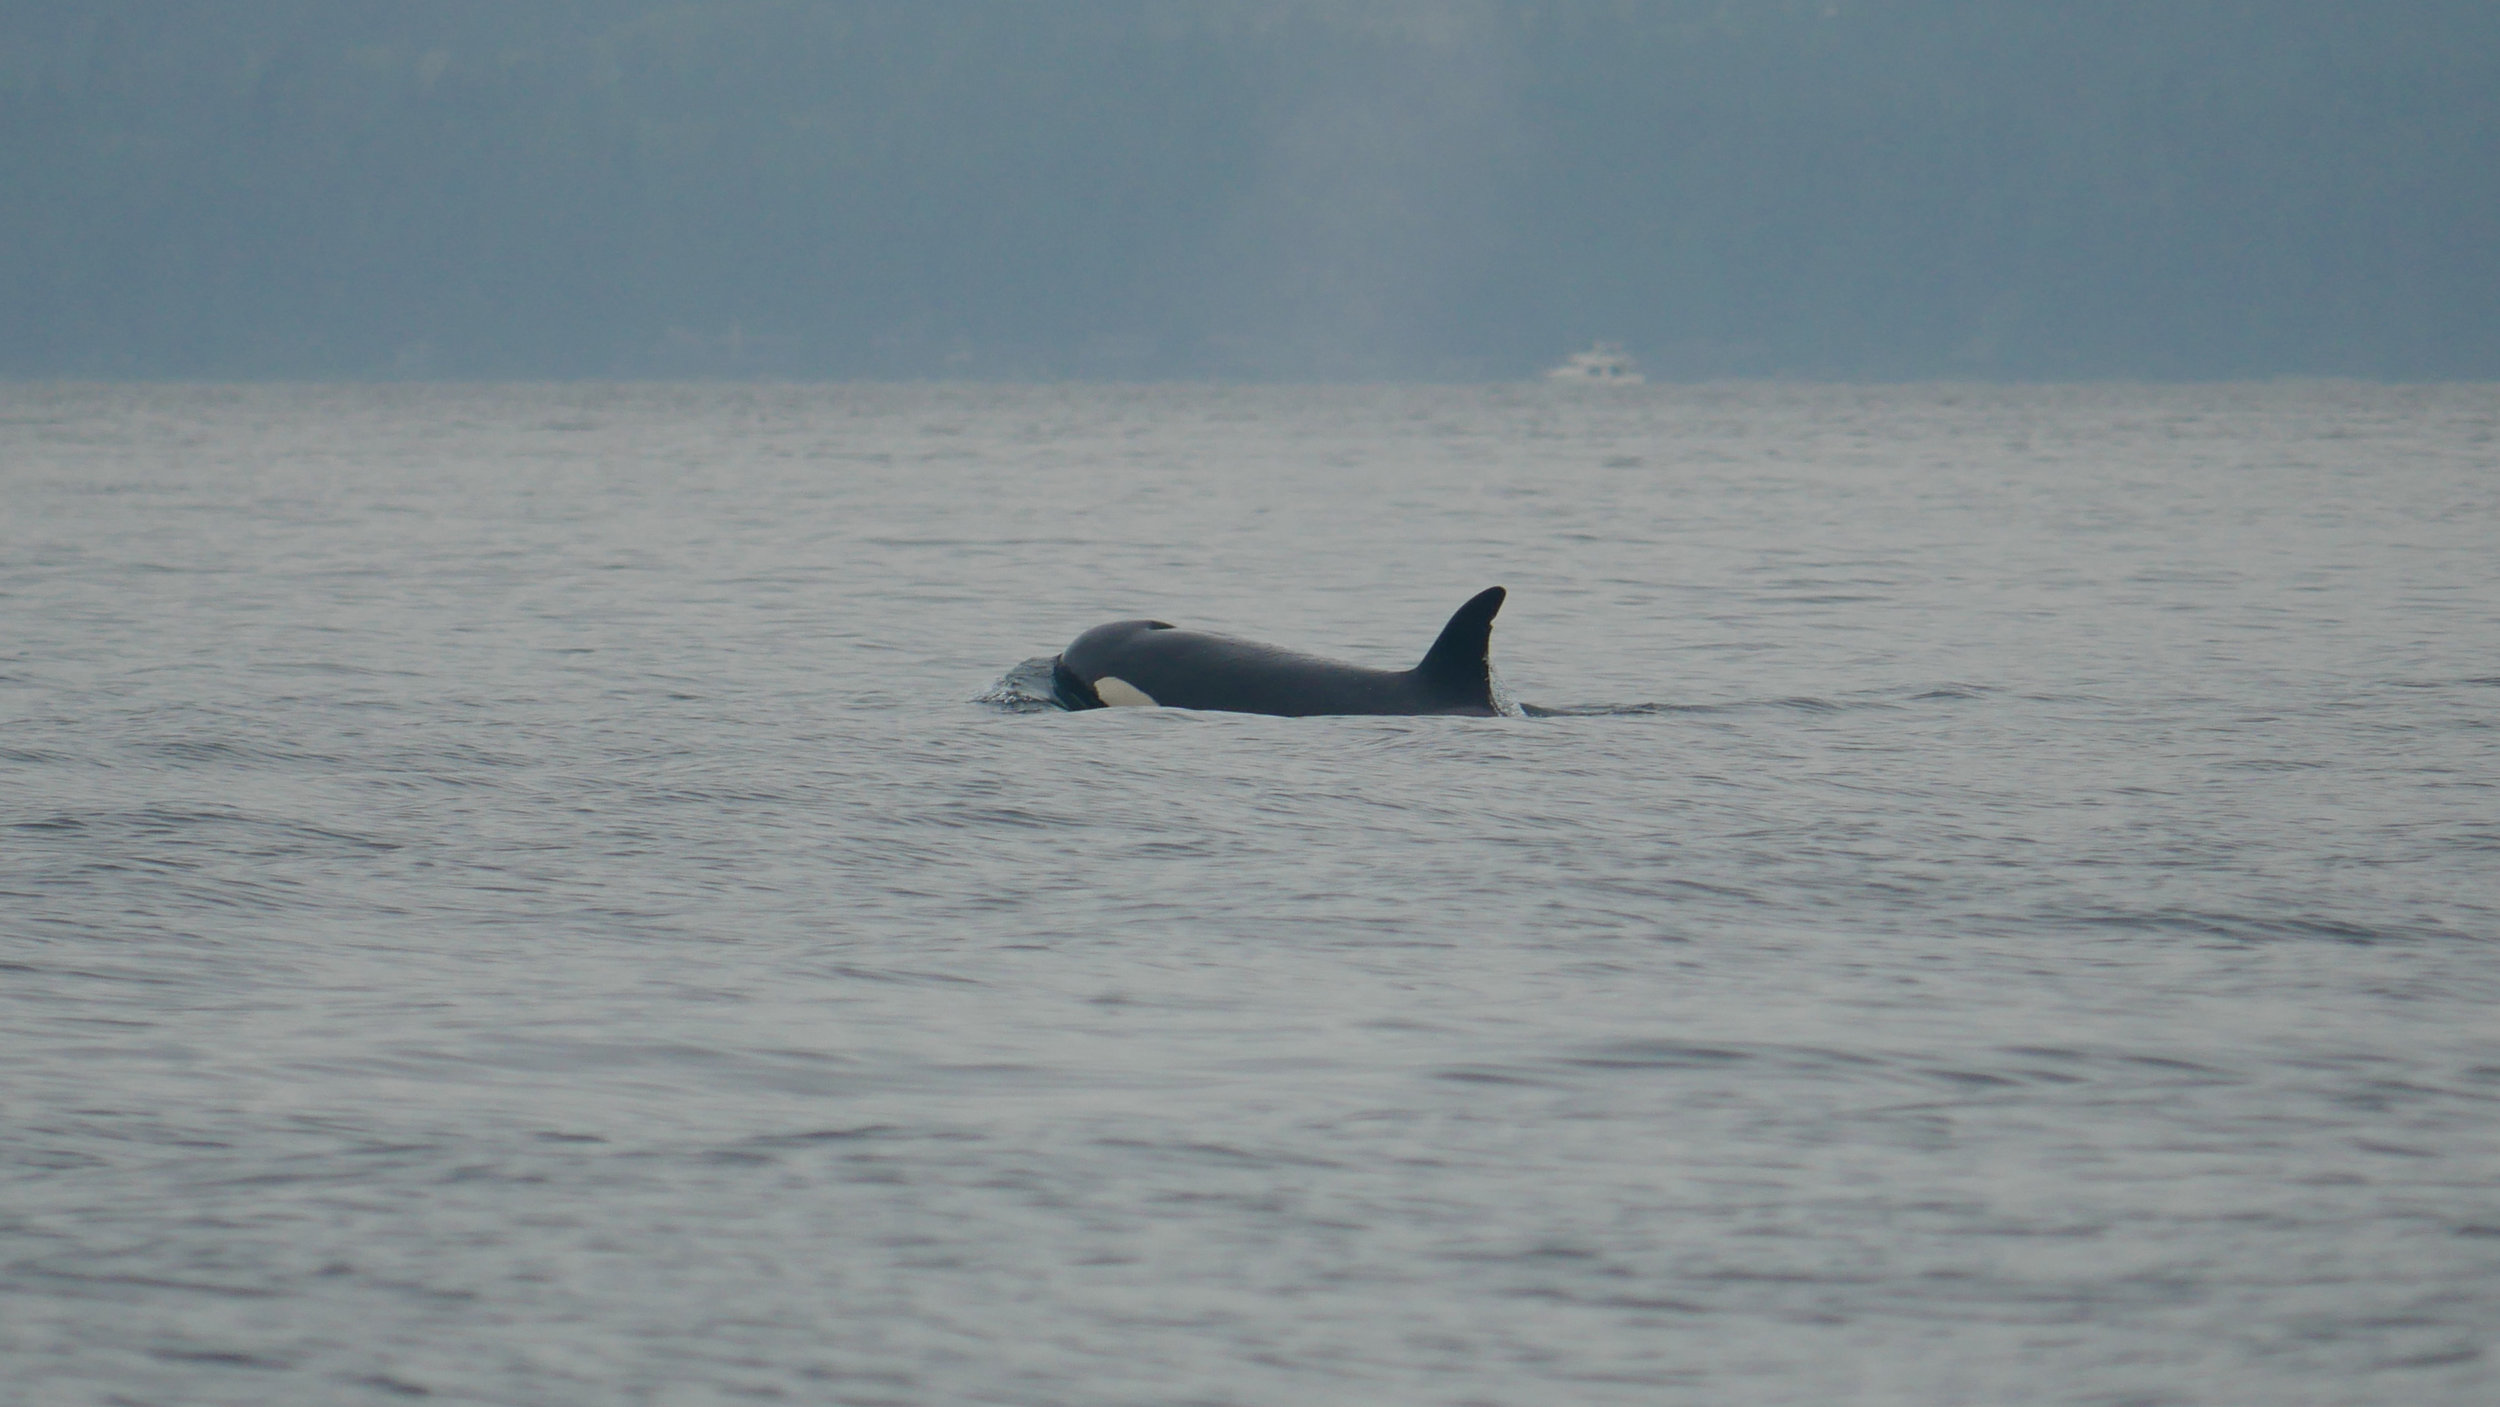 """T137D """"Wright"""" travelling through the water. Note the nicks out of the dorsal fin near the tip. Photo by Rebeka Pirker."""